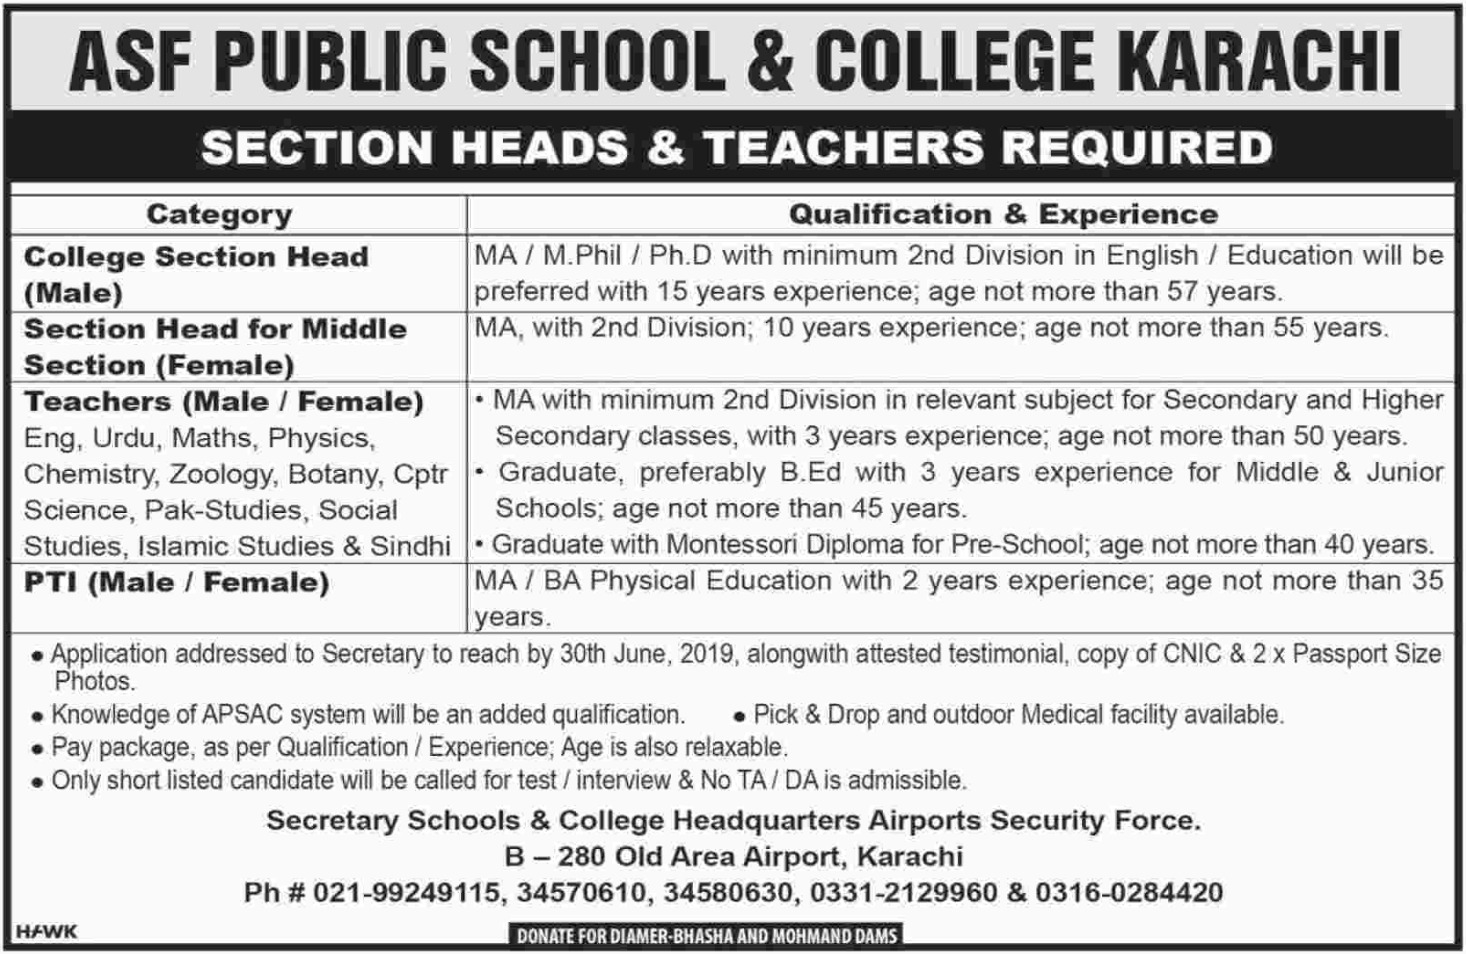 ASF Public School & College Karachi Jobs June 2019 - Sindh Jobs